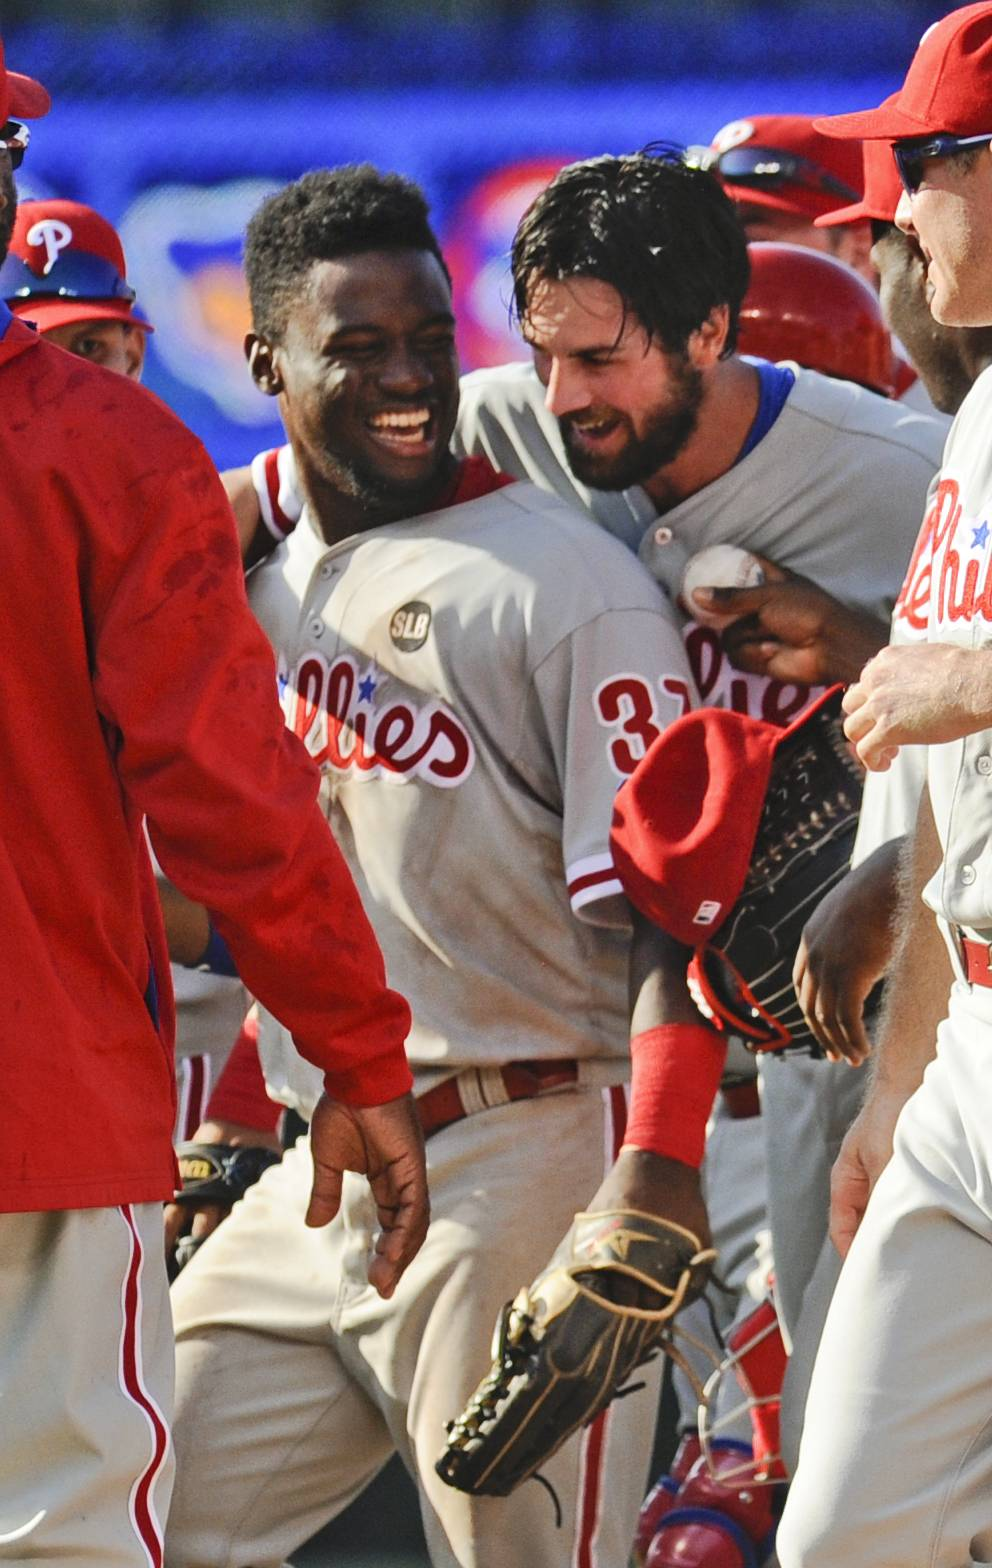 Philadelphia Phillies pitcher Cole Hamels, second from right, hugs center fielder Odubel Herrera after pitching a no-hitter against the Chicago Cubs in Chicago, Saturday, July 25, 2015. Herrera caught a fly ball hit by Cubs' Kris Bryant to end the game. The Phillies won 5-0.